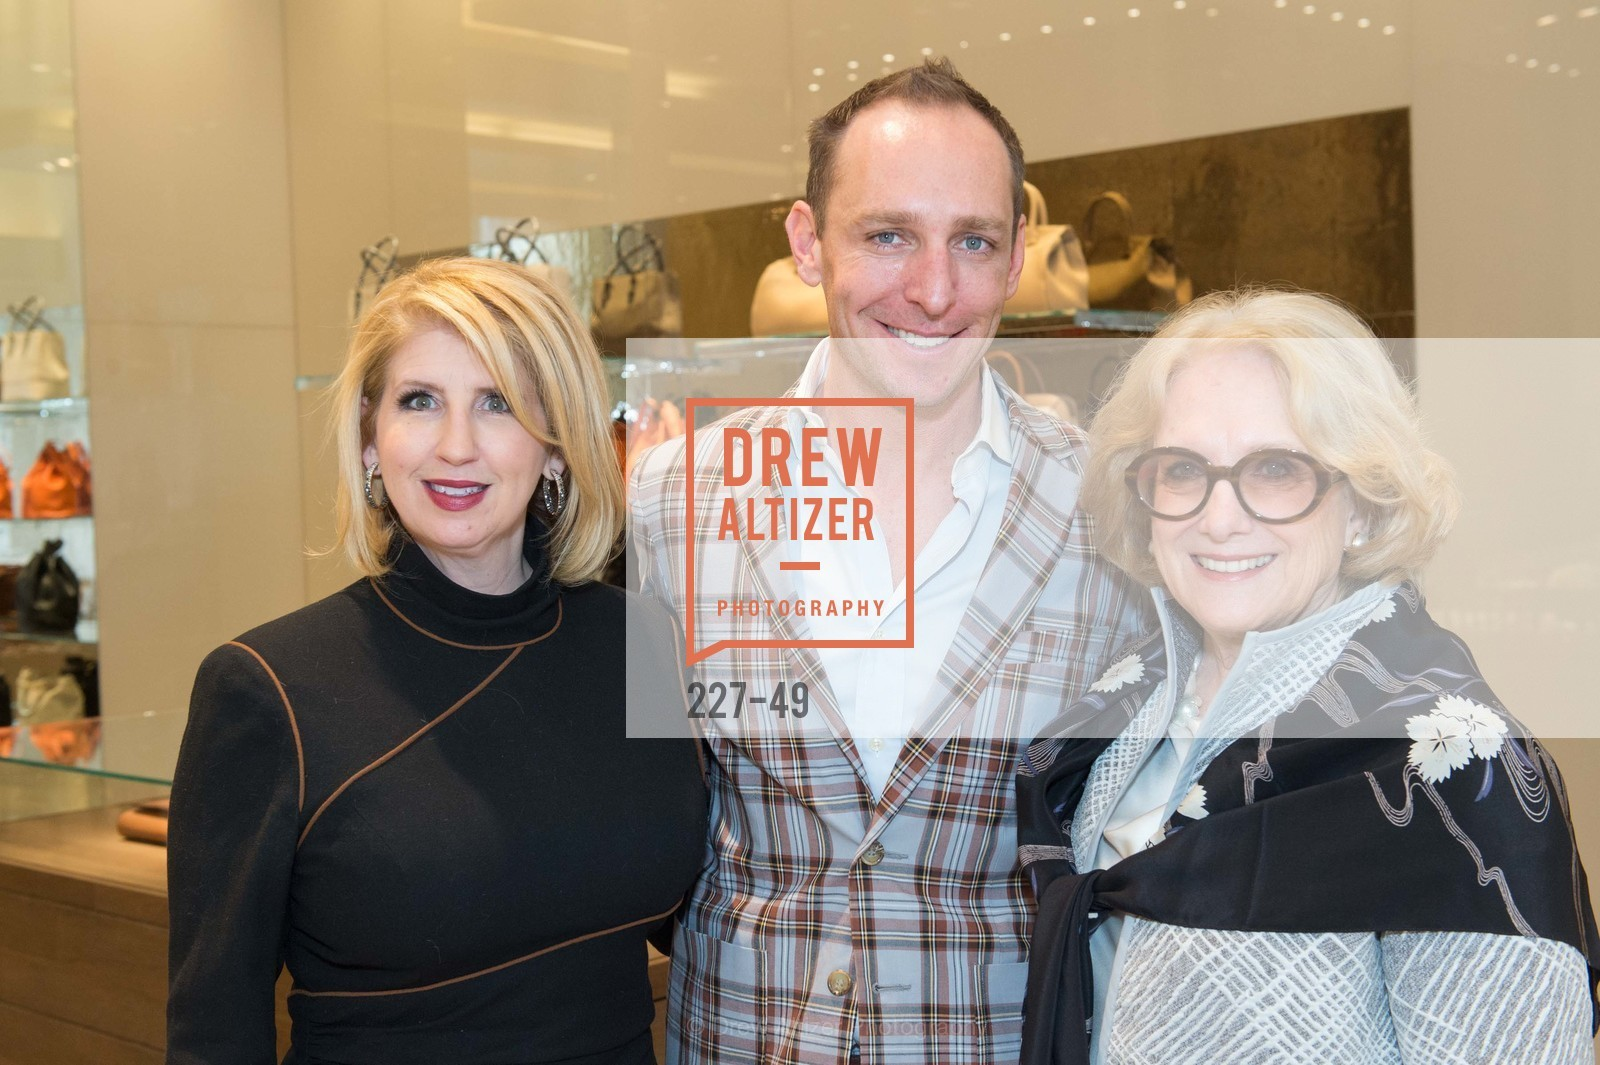 Roberta Economidis, Patrick Herning, Cynthia Molstad, Luncheon Hosted by Max Mara, Max Mara. 175 Post St, San Francisco, CA 94108, April 21st, 2015,Drew Altizer, Drew Altizer Photography, full-service agency, private events, San Francisco photographer, photographer california